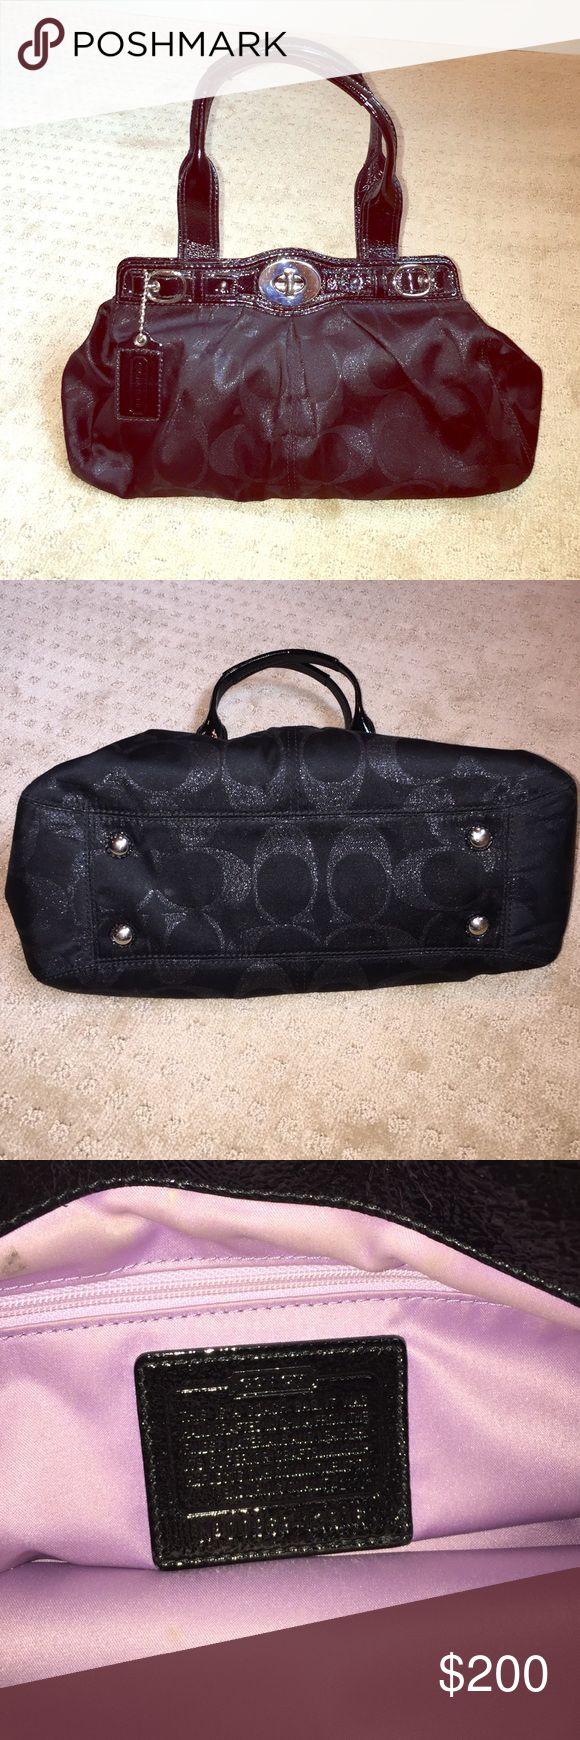 Black Coach Purse Black Coach Purse with purple lining. In great condition. Coach Bags Satchels